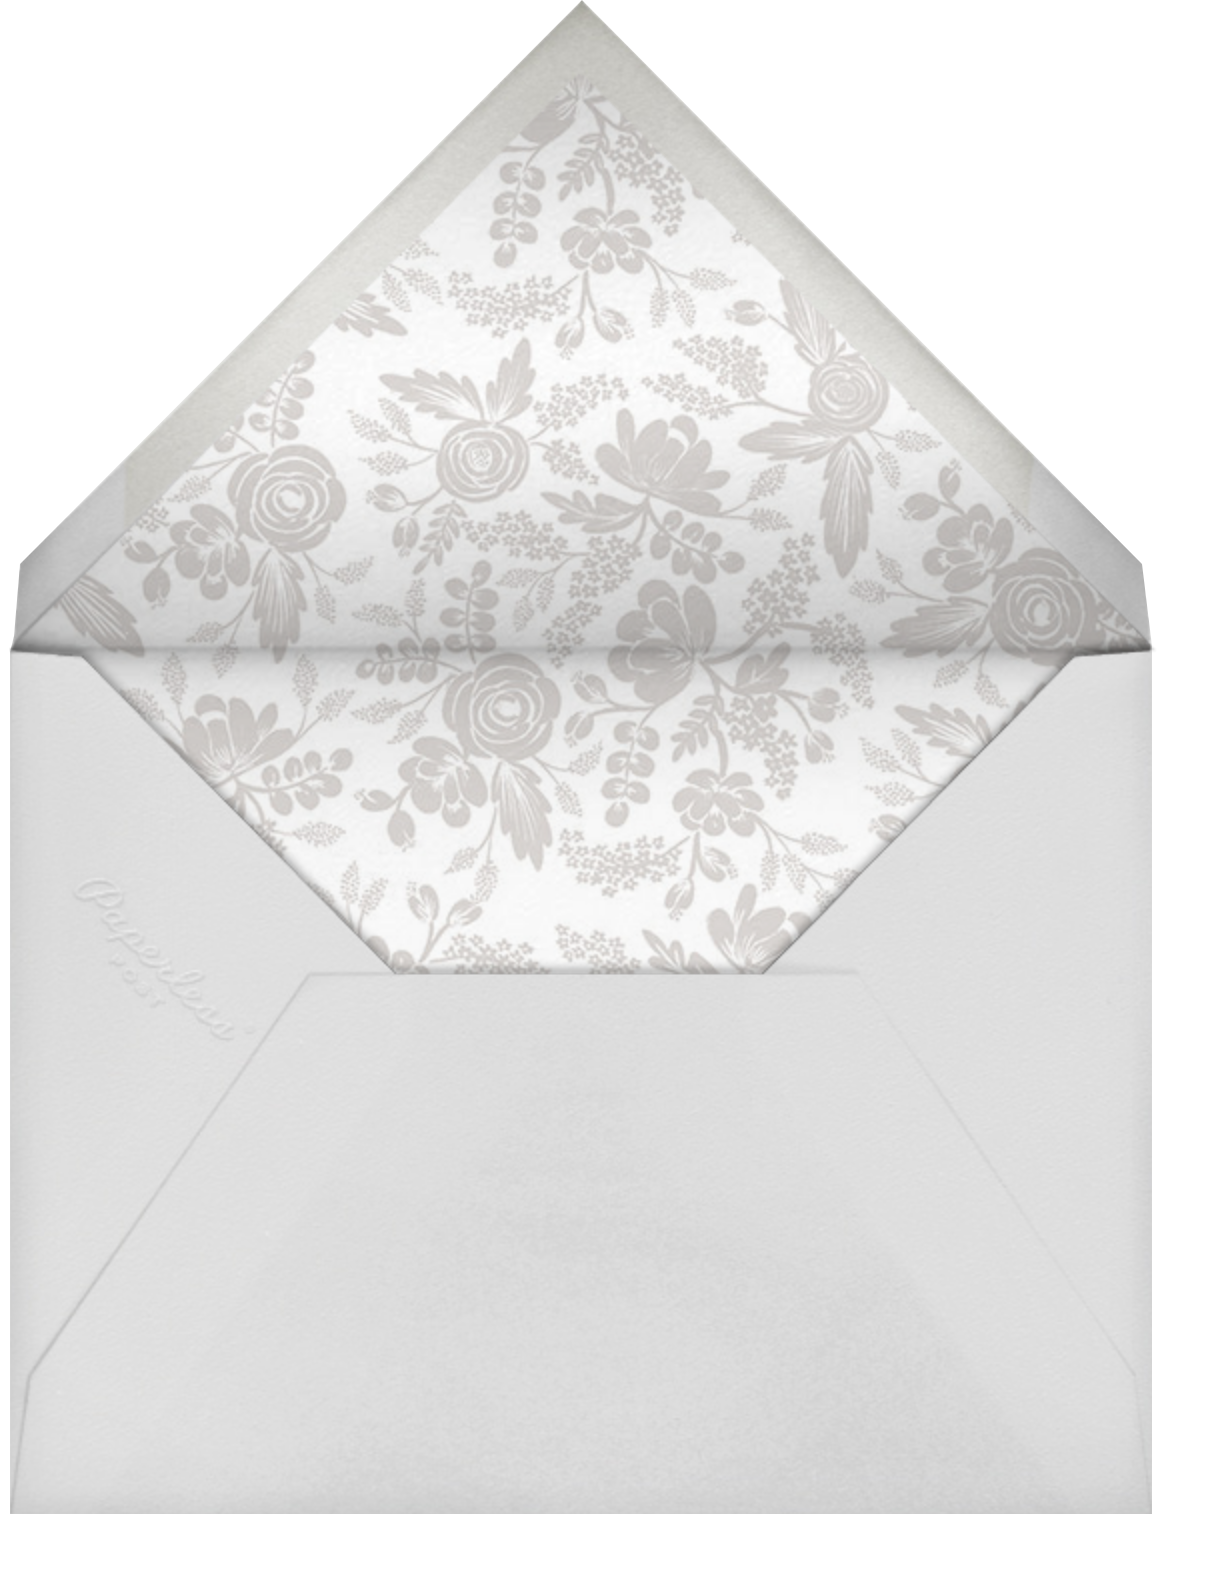 Heather and Lace (Horizontal Frame) - Rose Gold/Coral - Rifle Paper Co. - Envelope